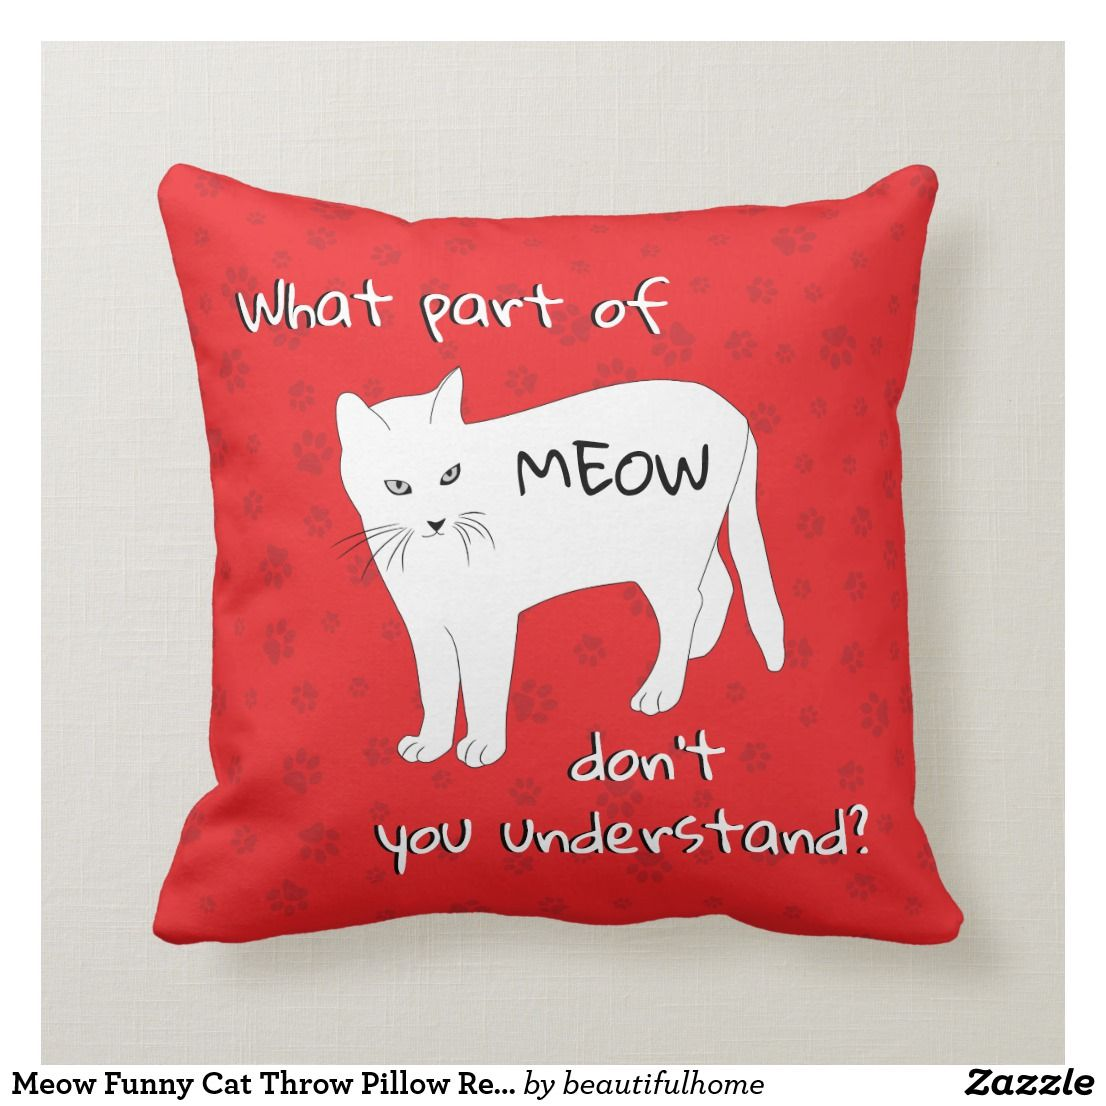 Meow Funny Cat Throw Pillow Red White Black